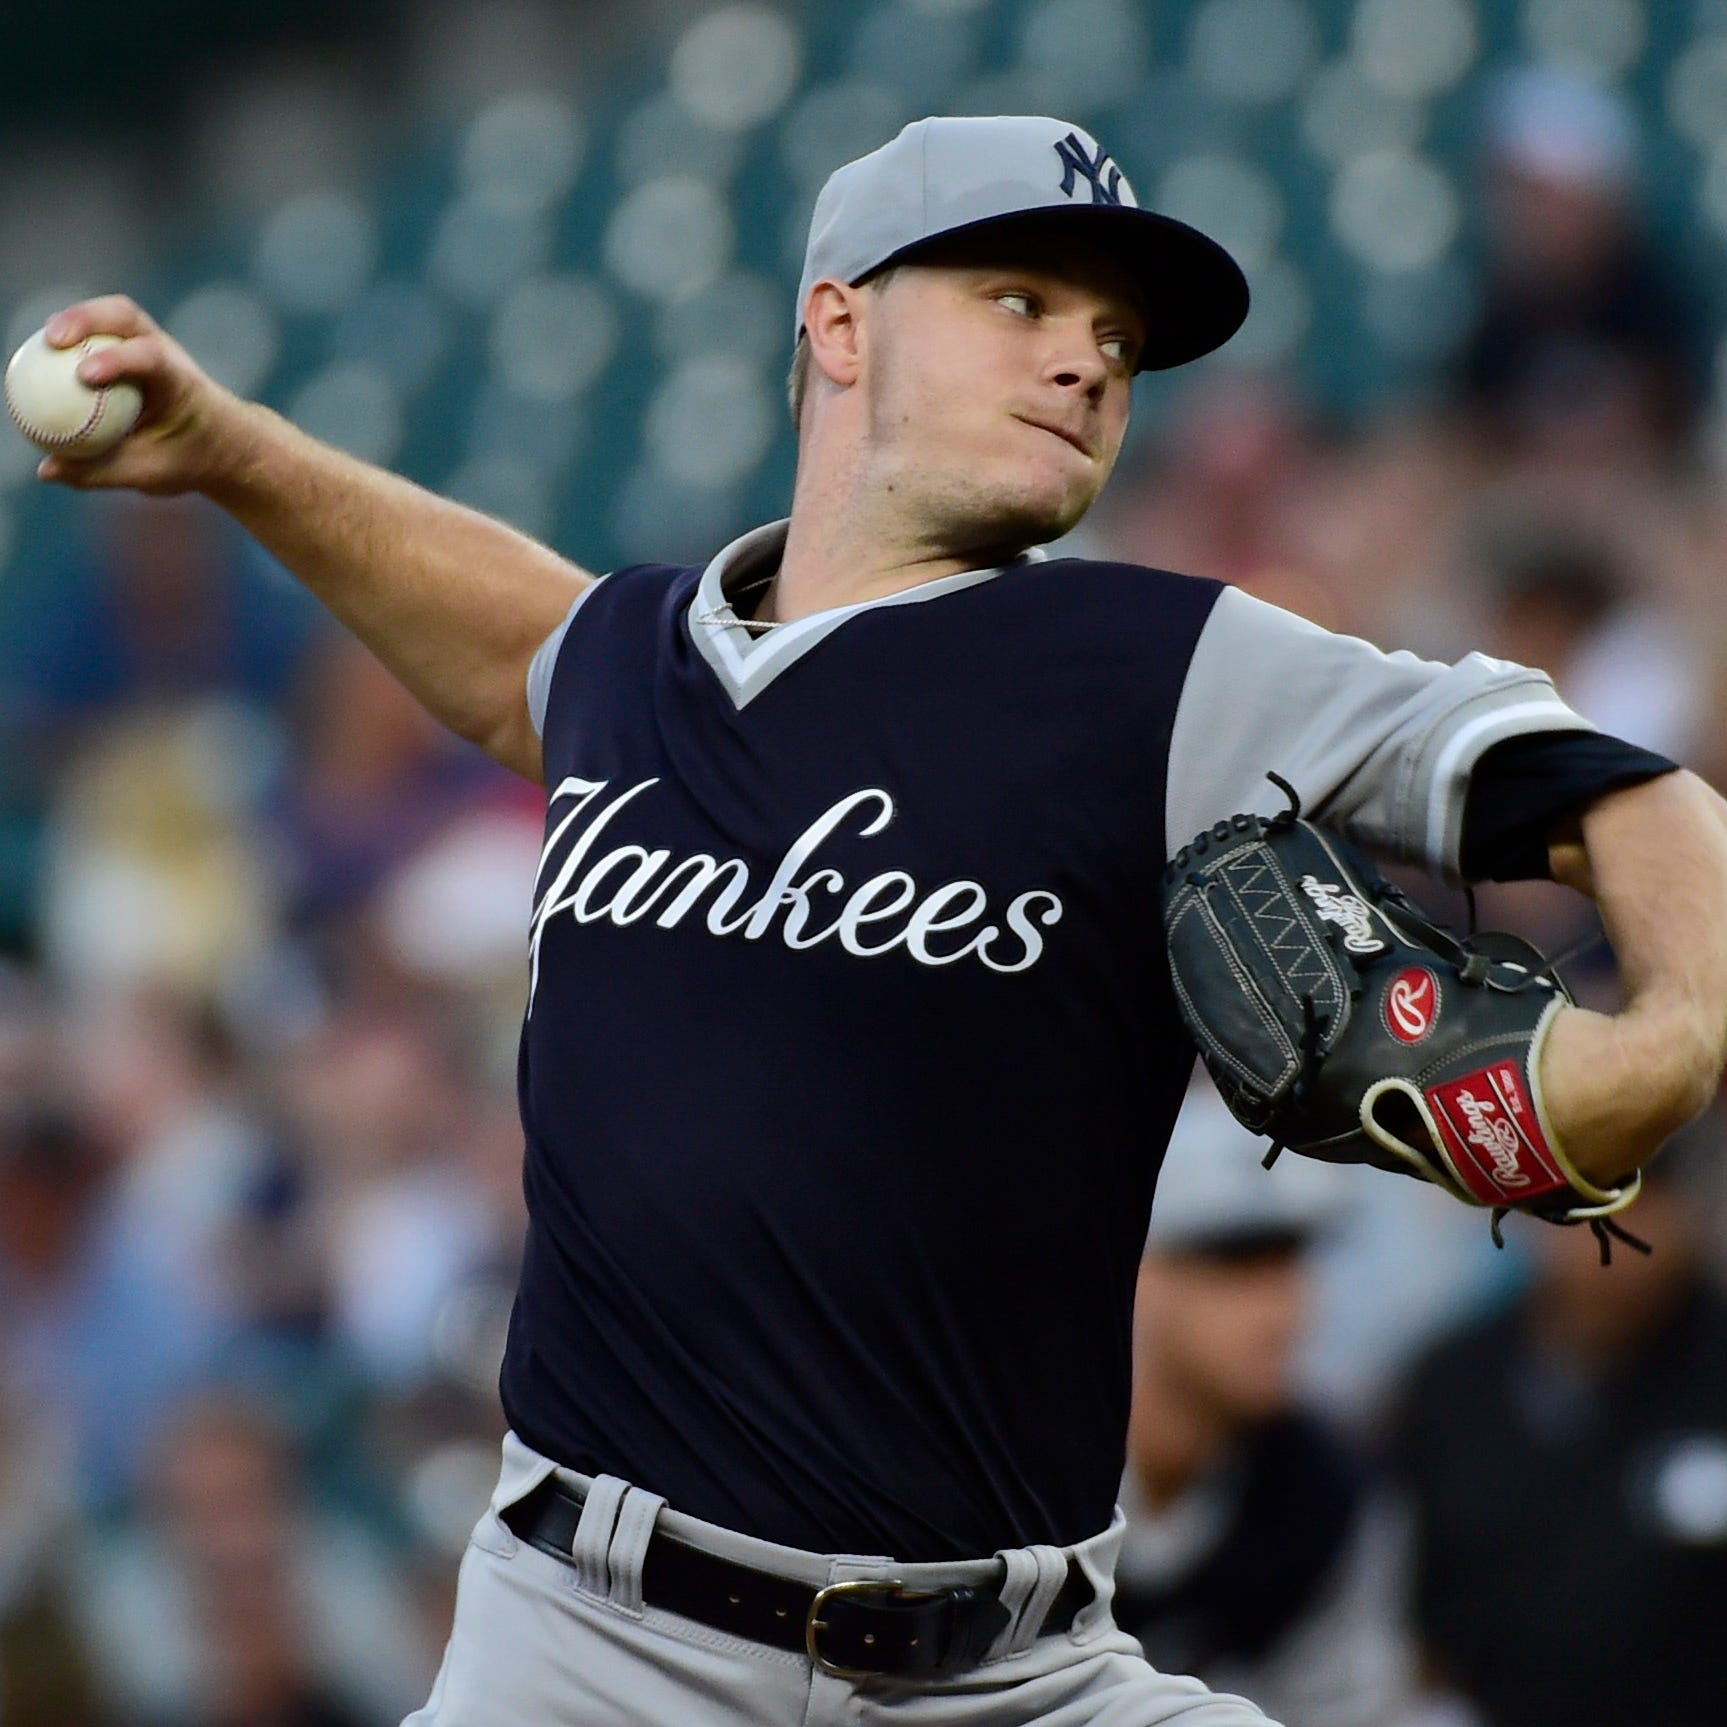 Yankees finalize Sonny Gray trade to Reds prospect Shed Long, per reports